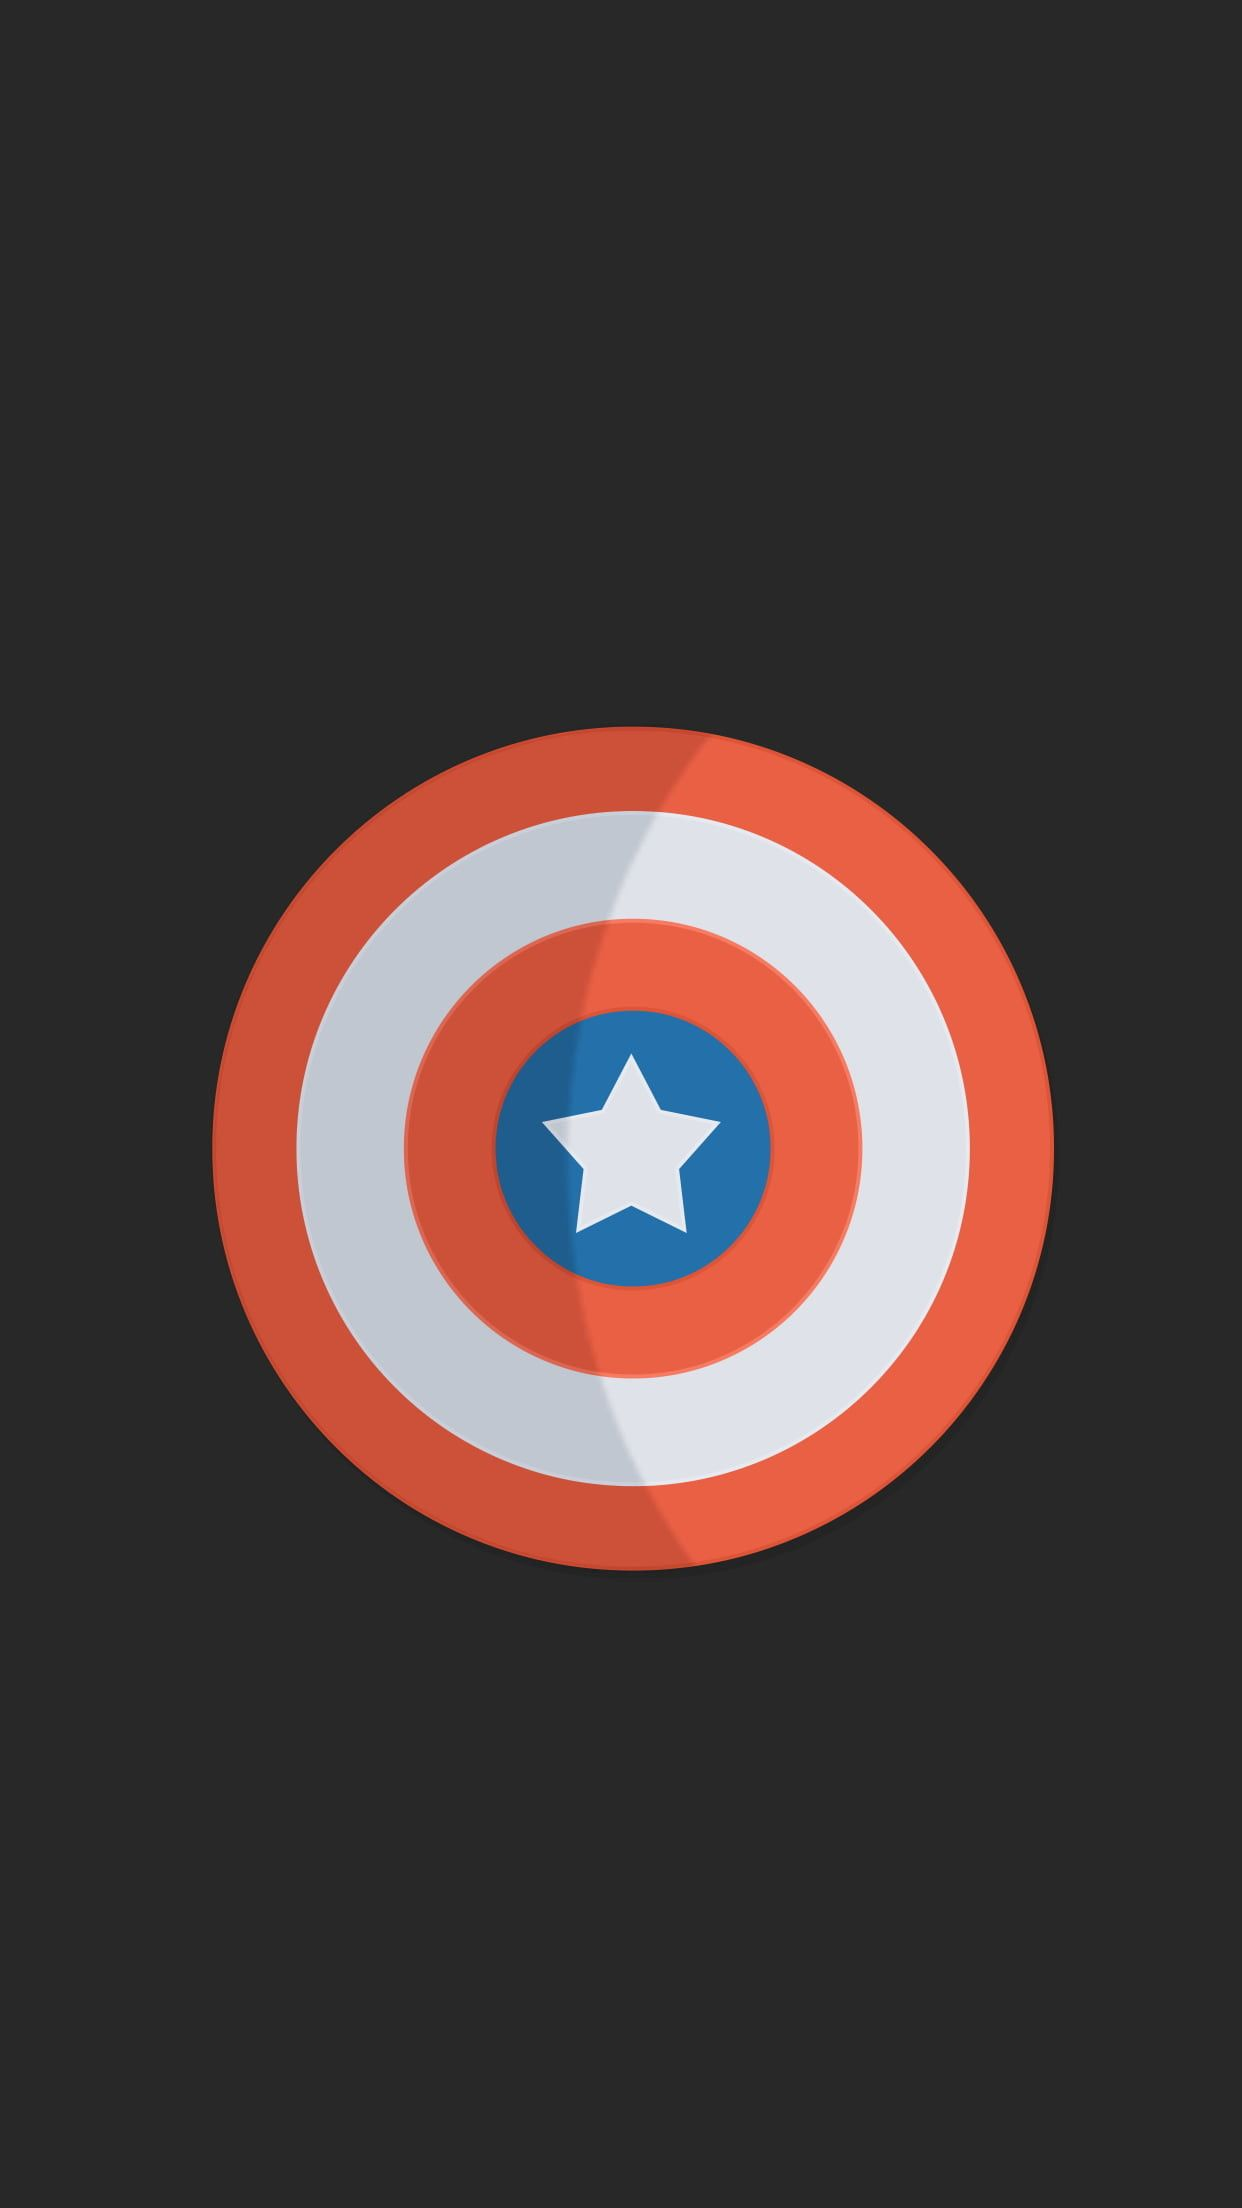 Captain America Logo Wallpapers